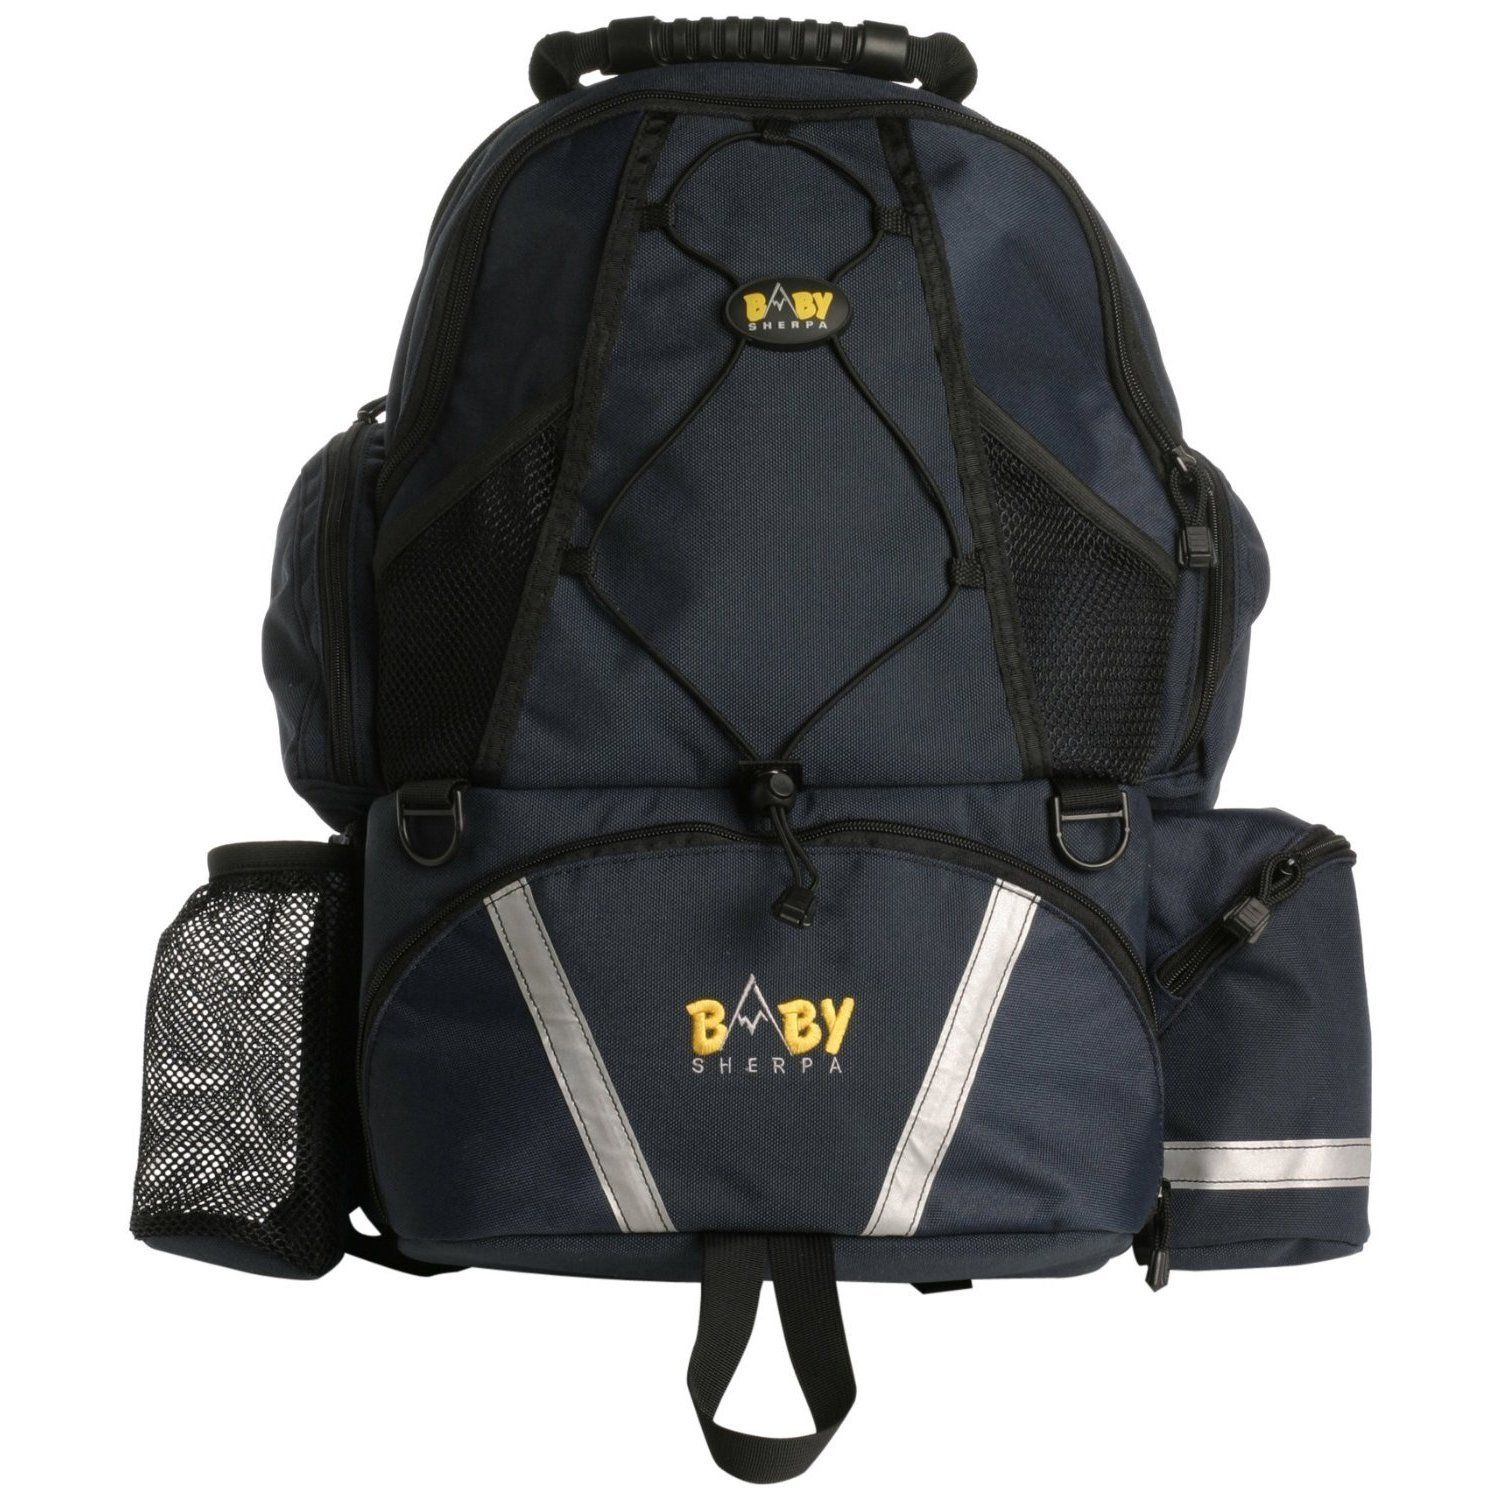 The Baby Sherpa Diaper Backpack is multi-functional and ergonomically designed with four bags in one. This ergonomically designed, hands-free product out-packs the competition.